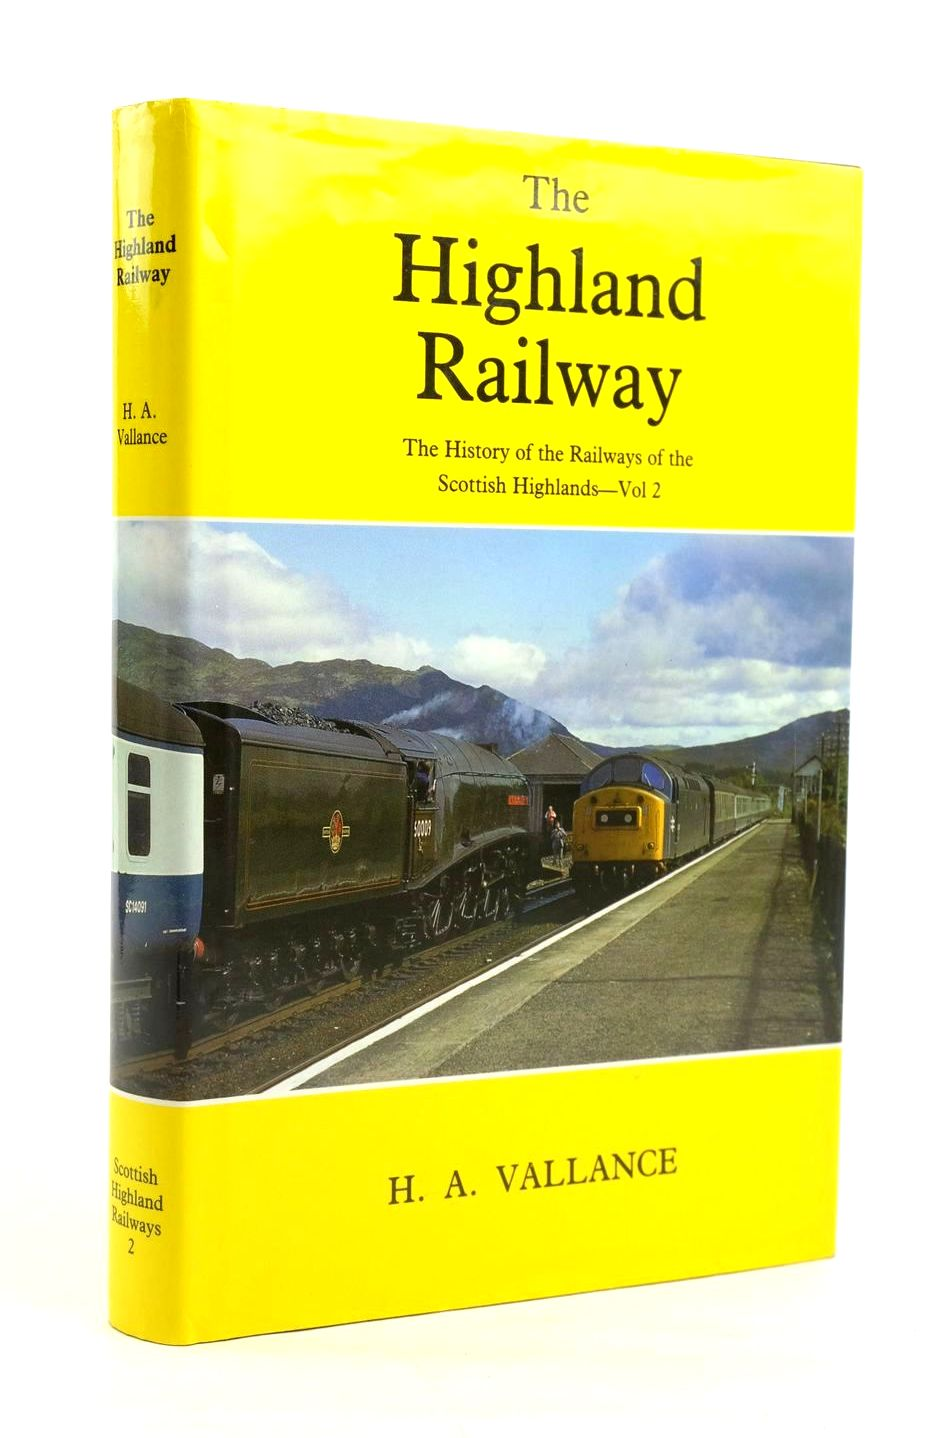 Photo of THE HIGHLAND RAILWAY written by Vallance, H.A. Clinker, C.R. Lambert, Anthony J. published by David St John Thomas, David & Charles (STOCK CODE: 1319935)  for sale by Stella & Rose's Books